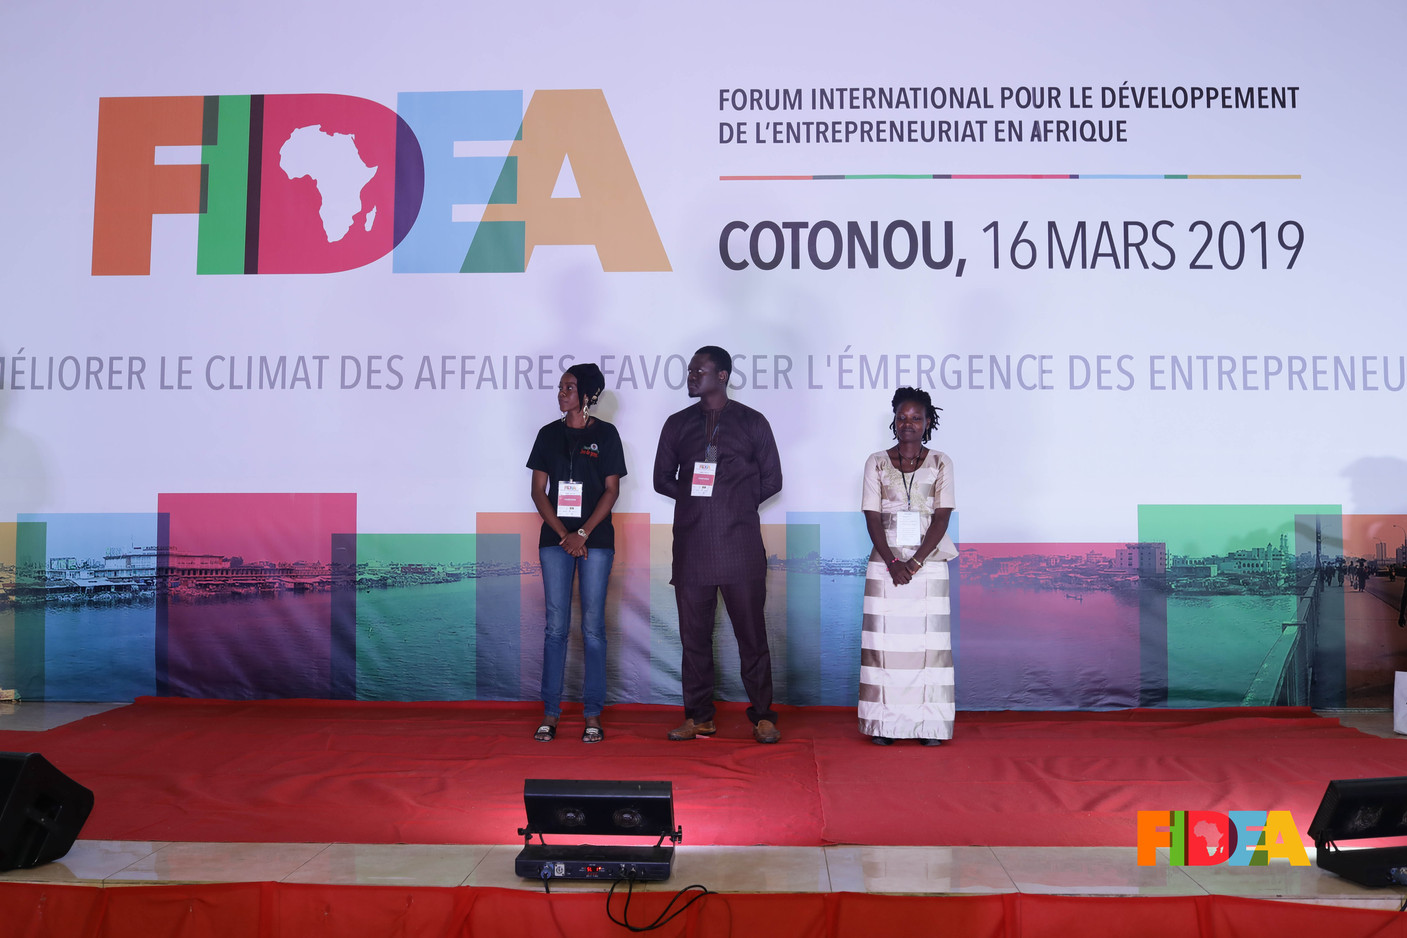 Azarath OGBON, Rodrigue BADEDJI, Chantal ADIKO